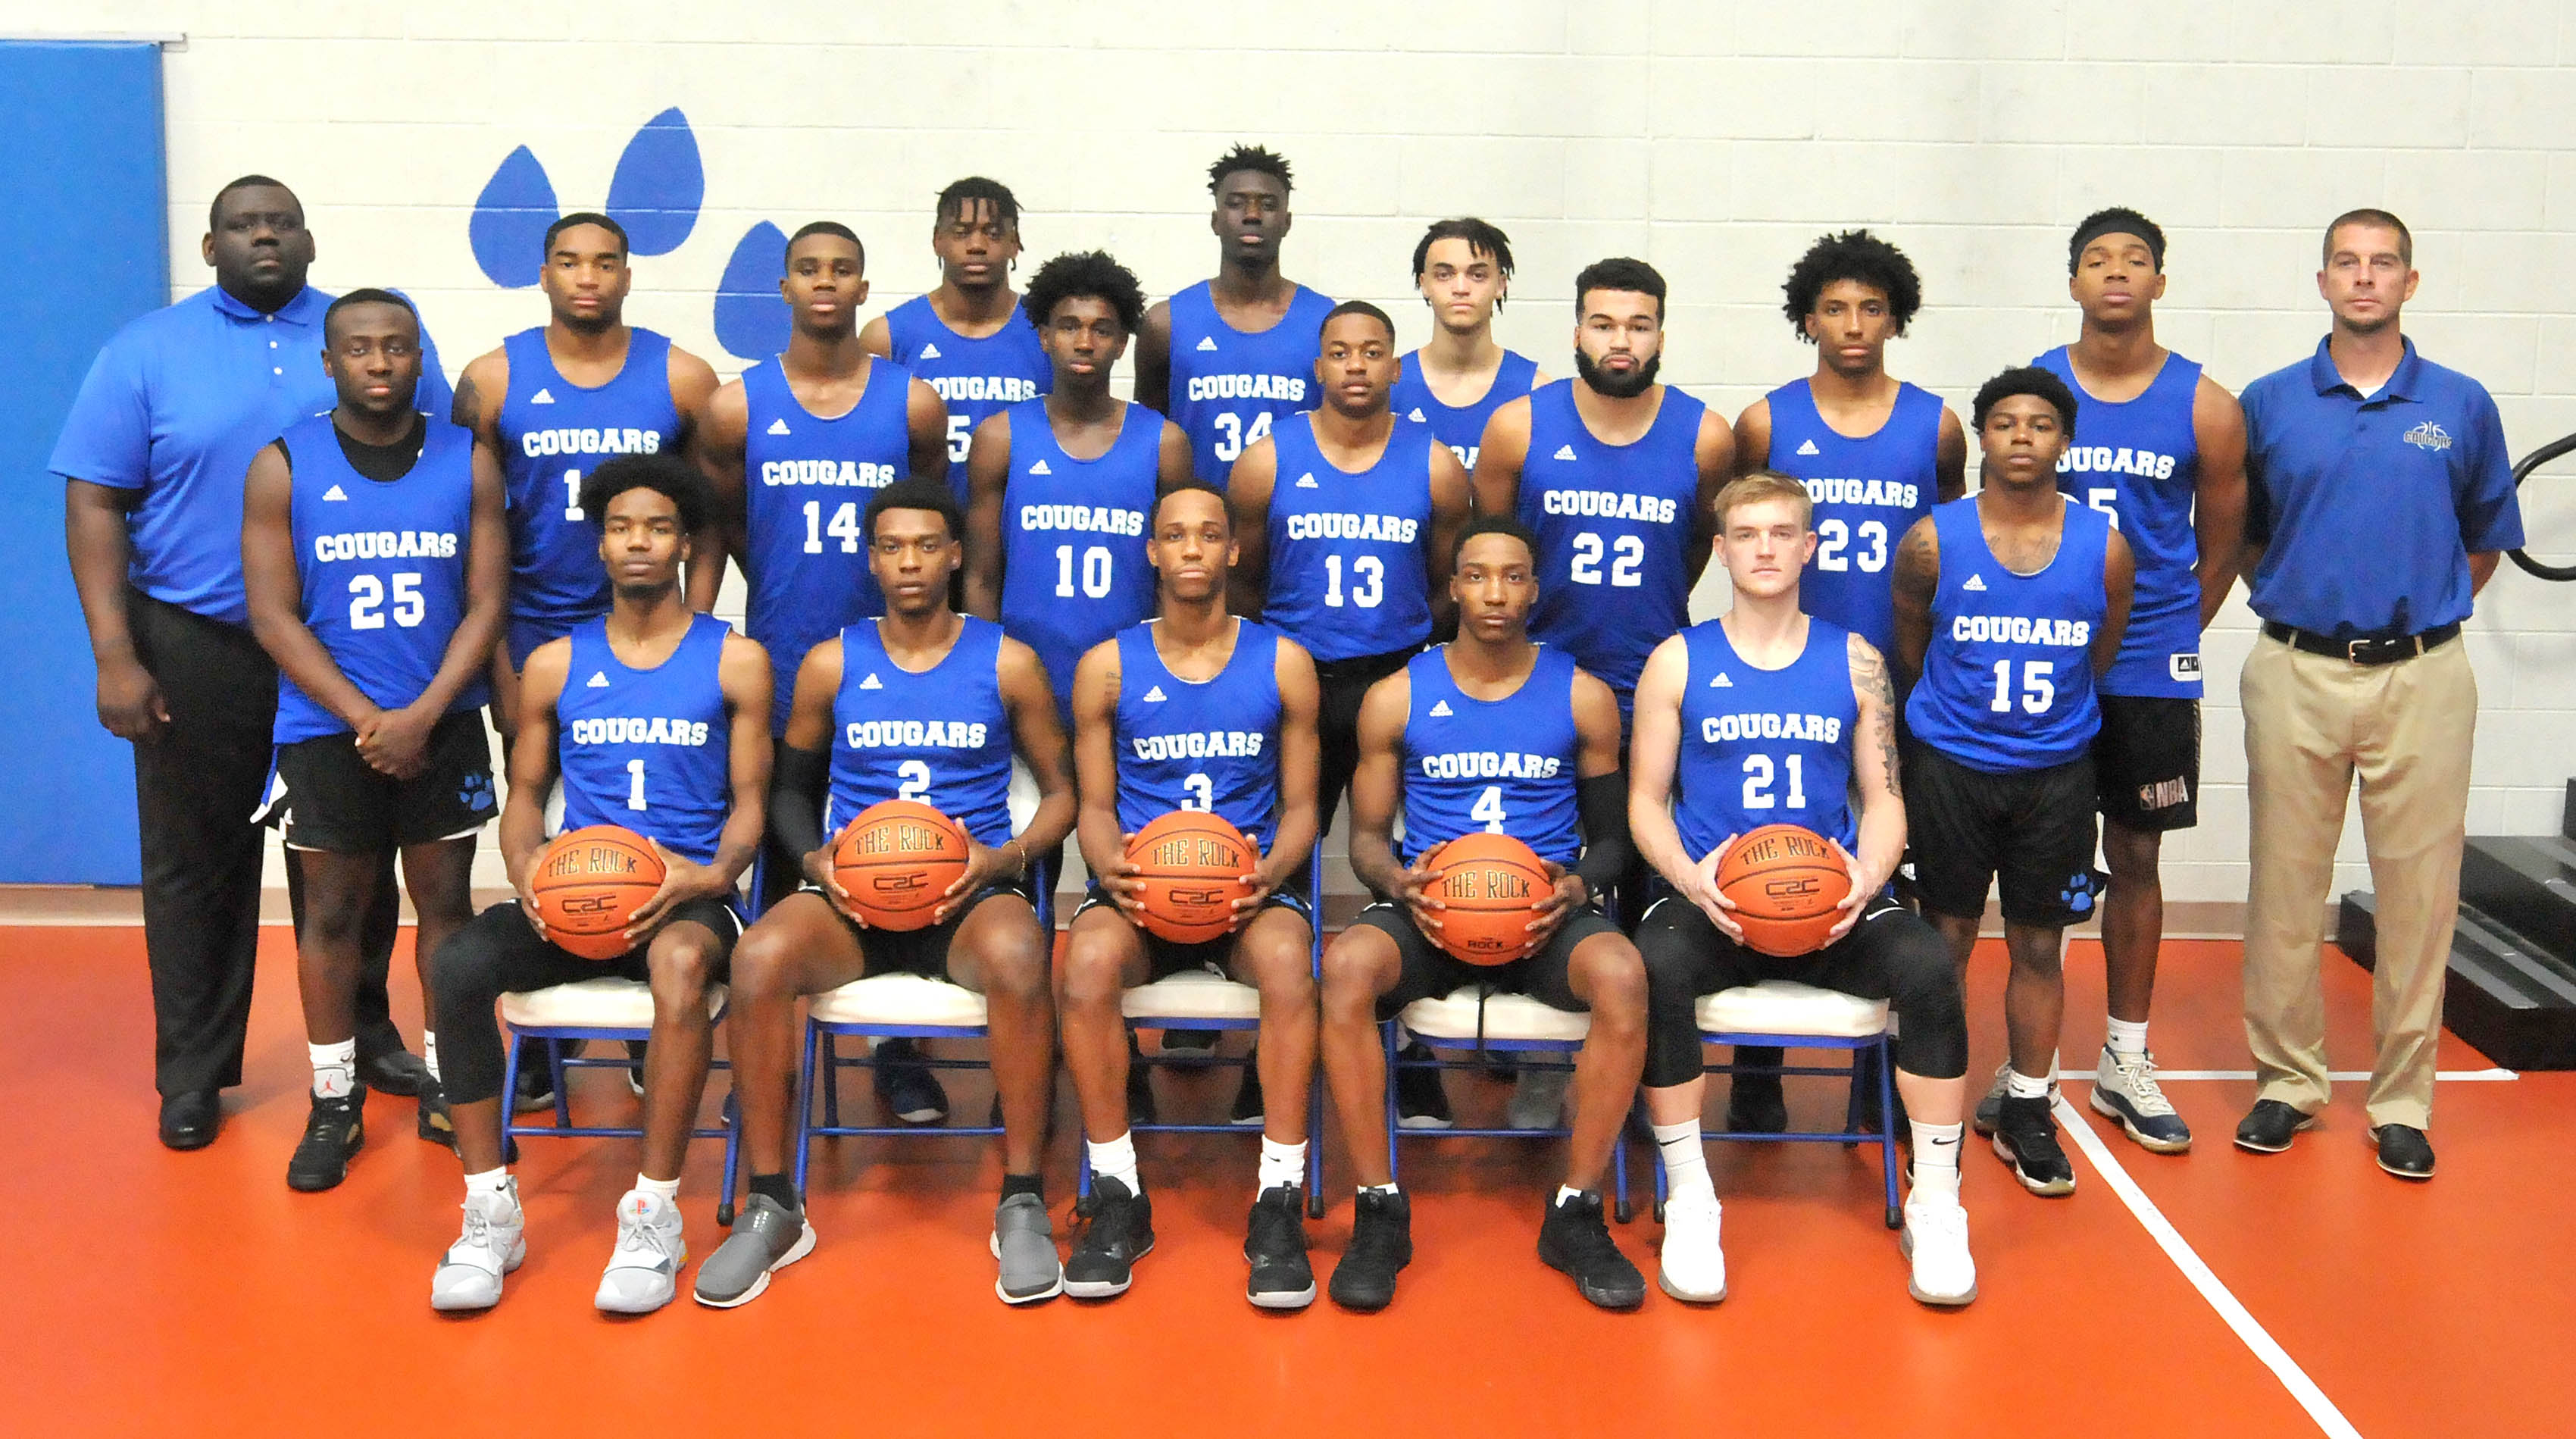 Read the full story, CCCC men's basketball ready for 2019-2020 season